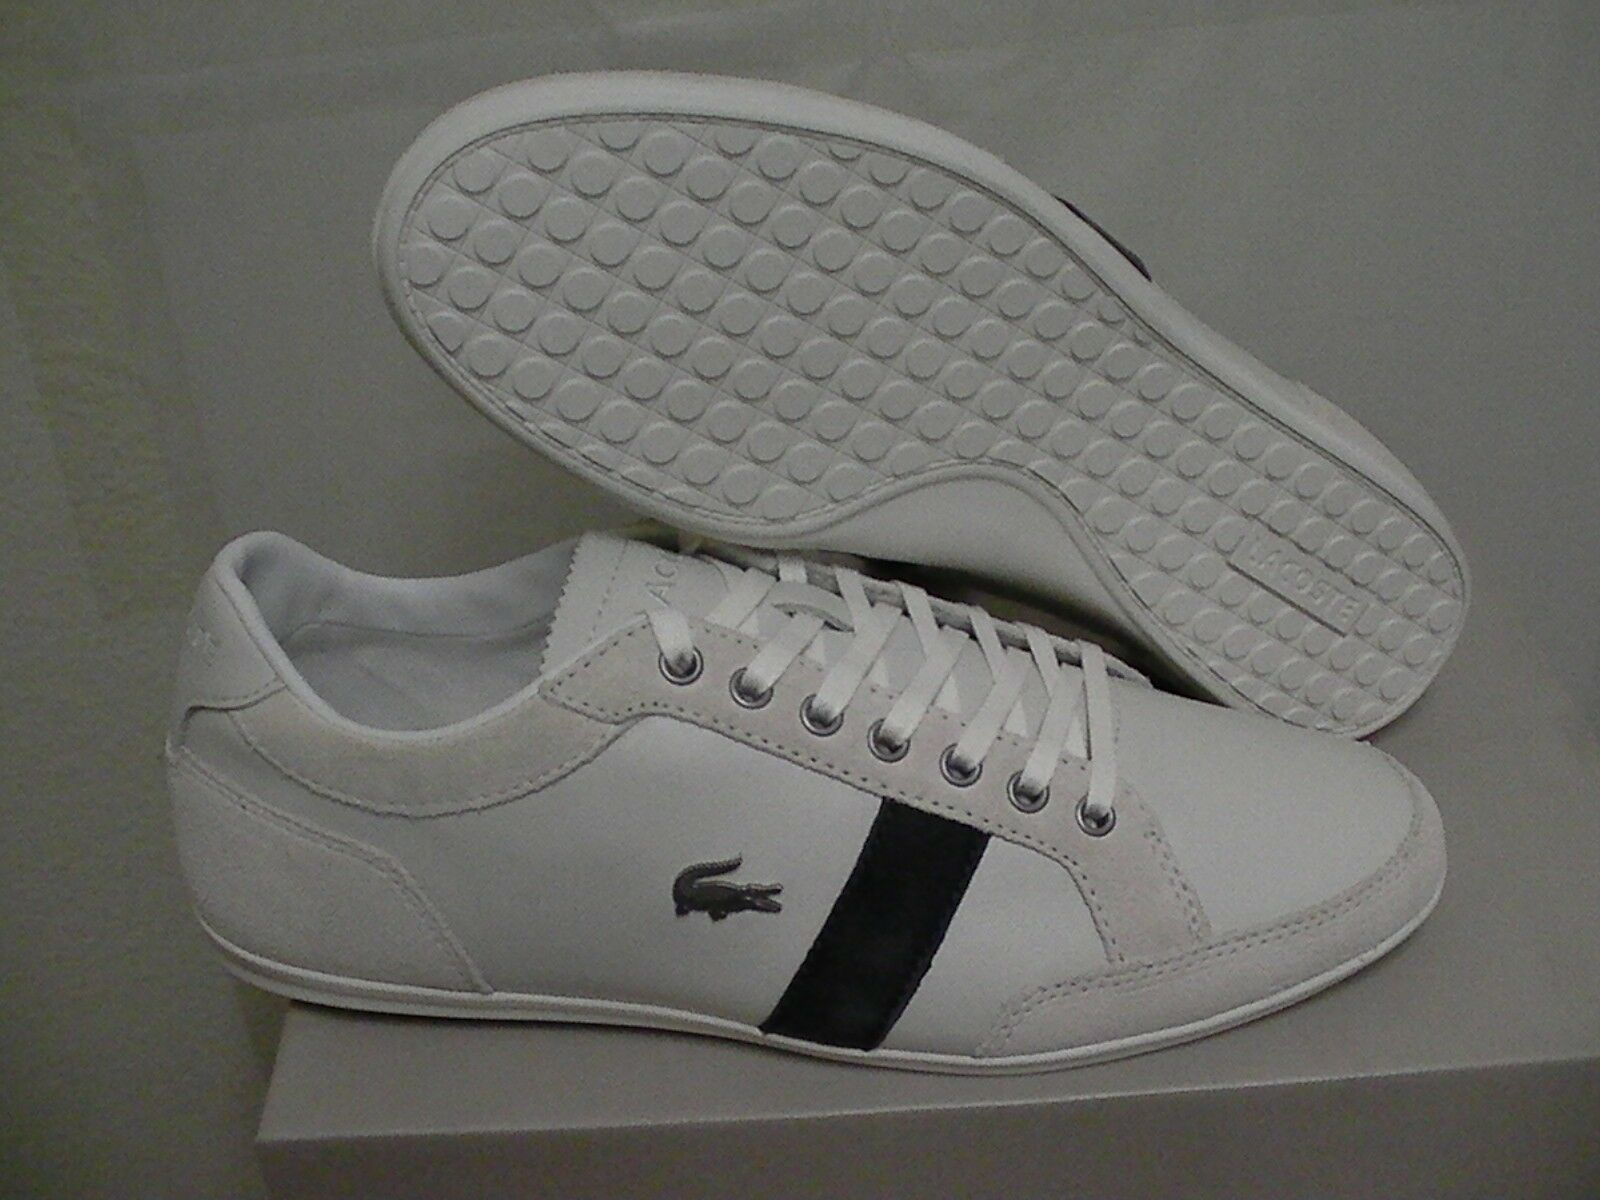 Lacoste shoes alisos 14 spm off white leather/suede size 10.5 us